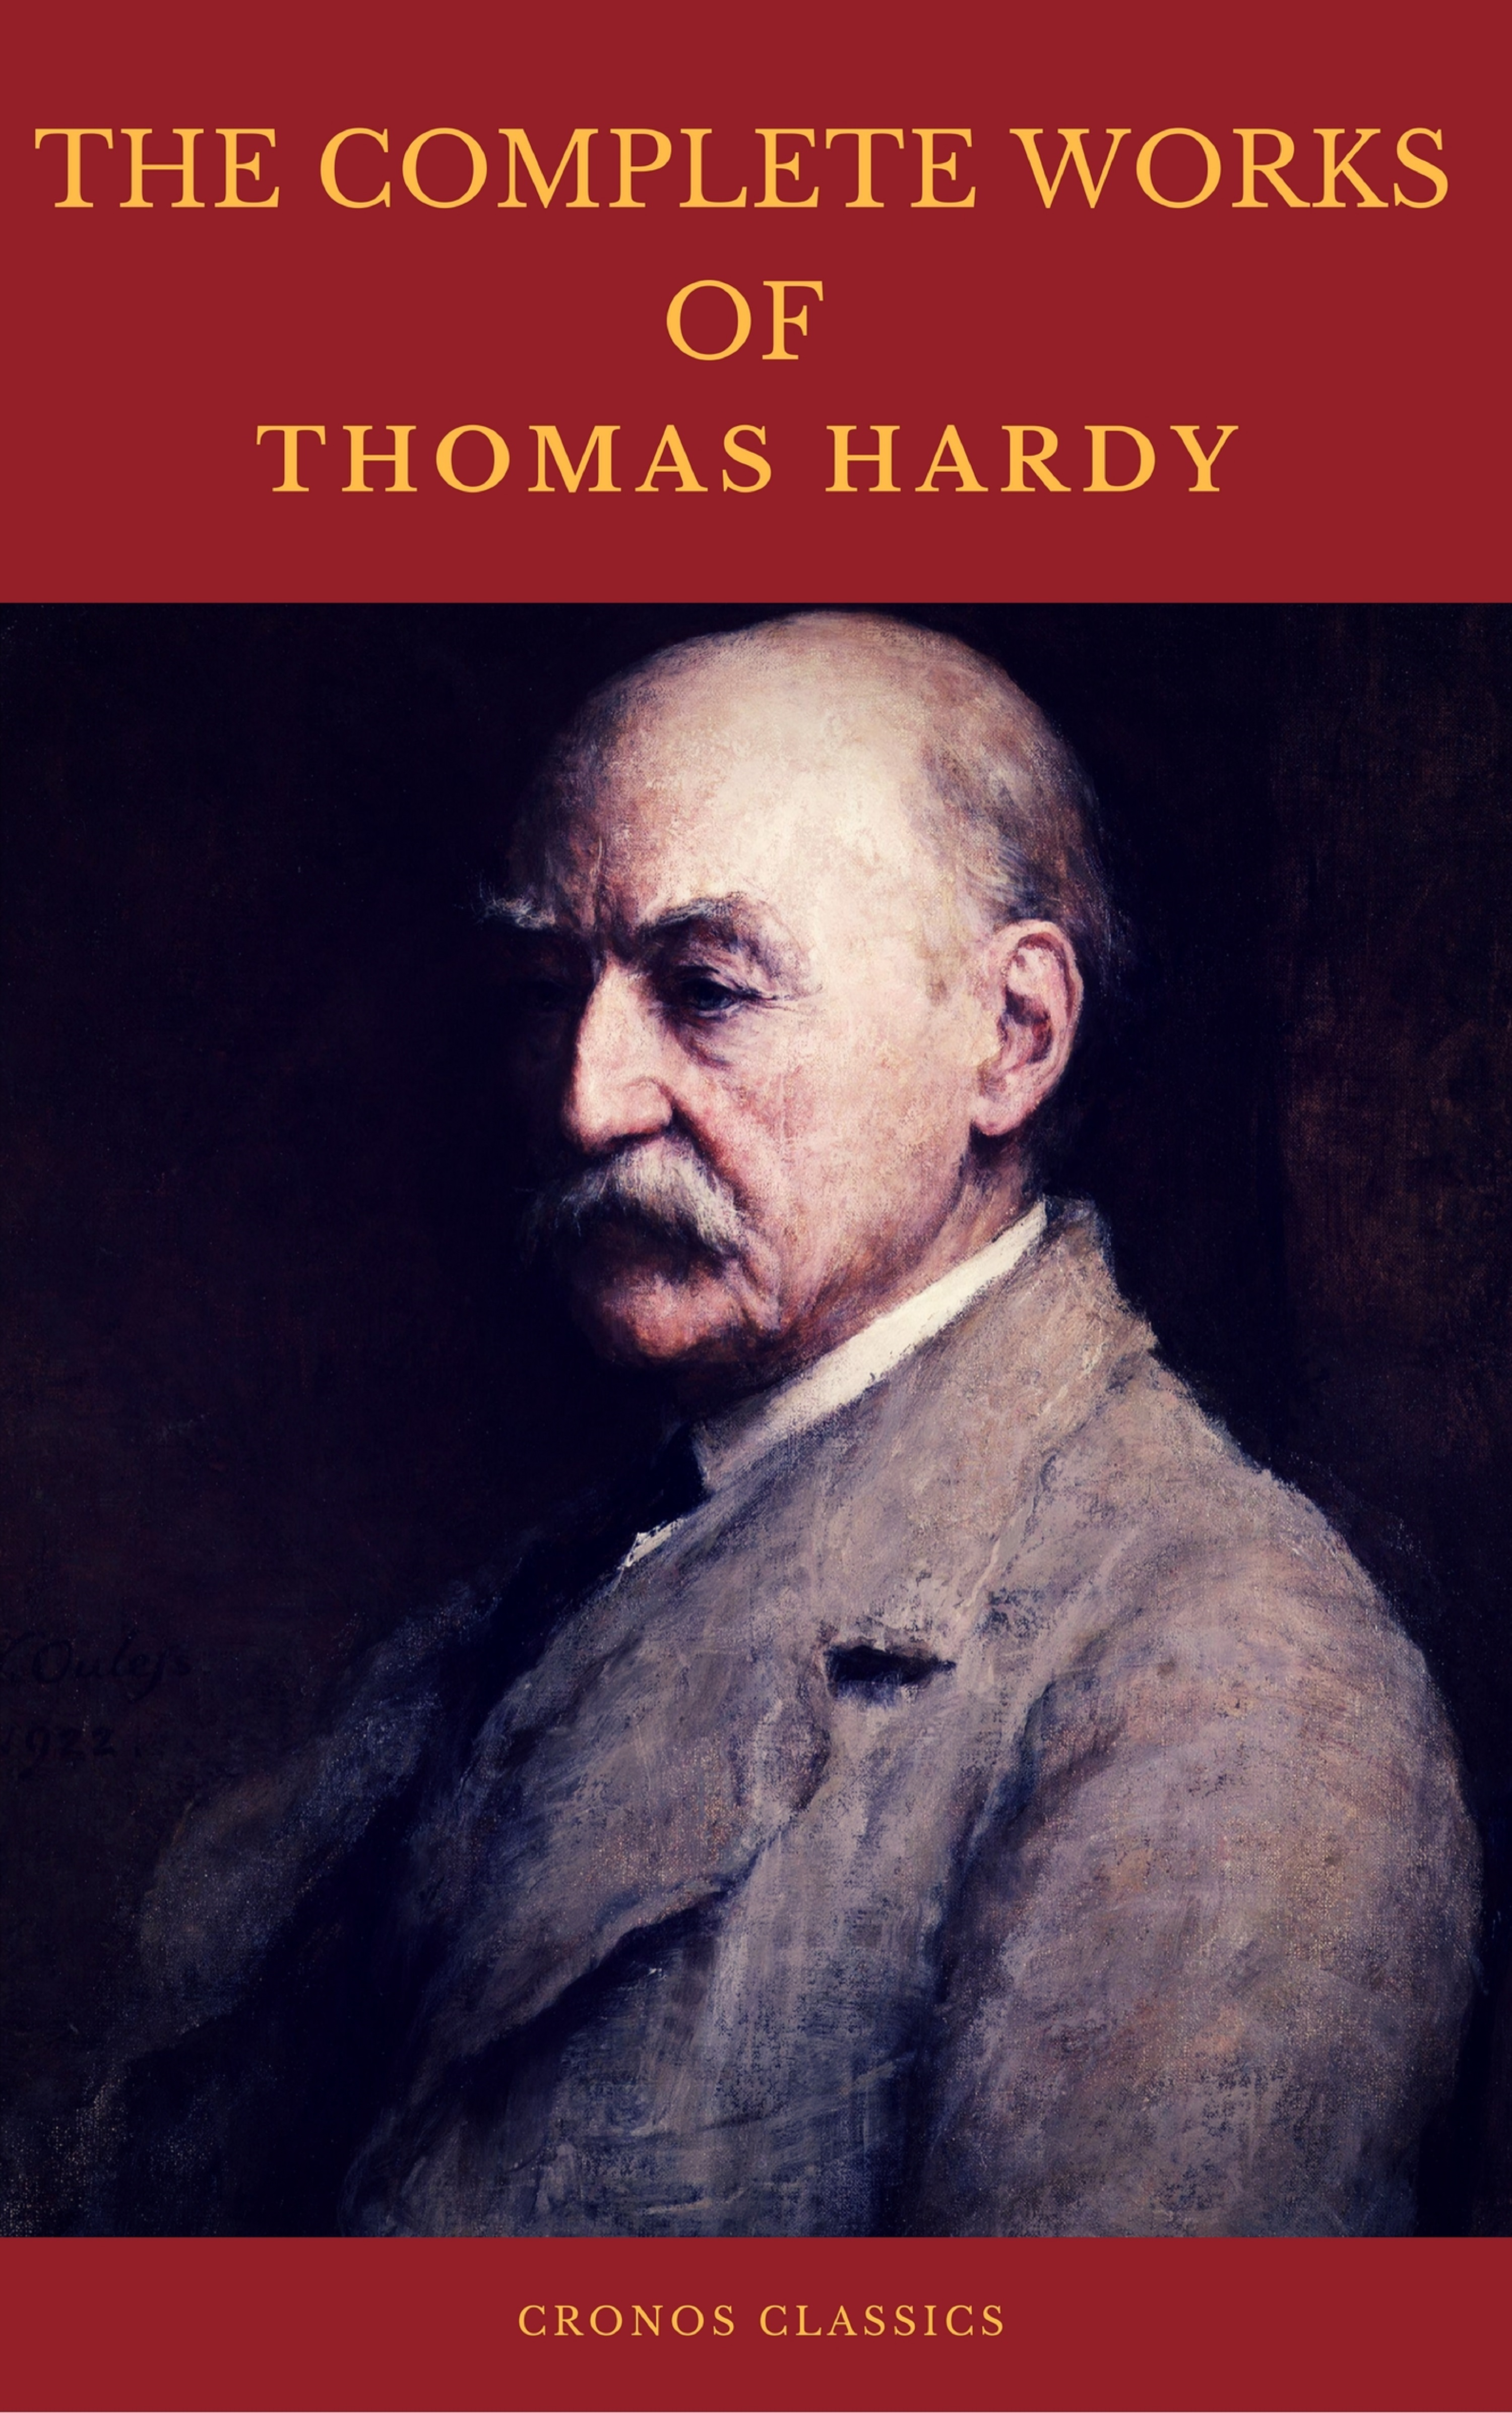 the complete works of thomas hardy illustrated cronos classics